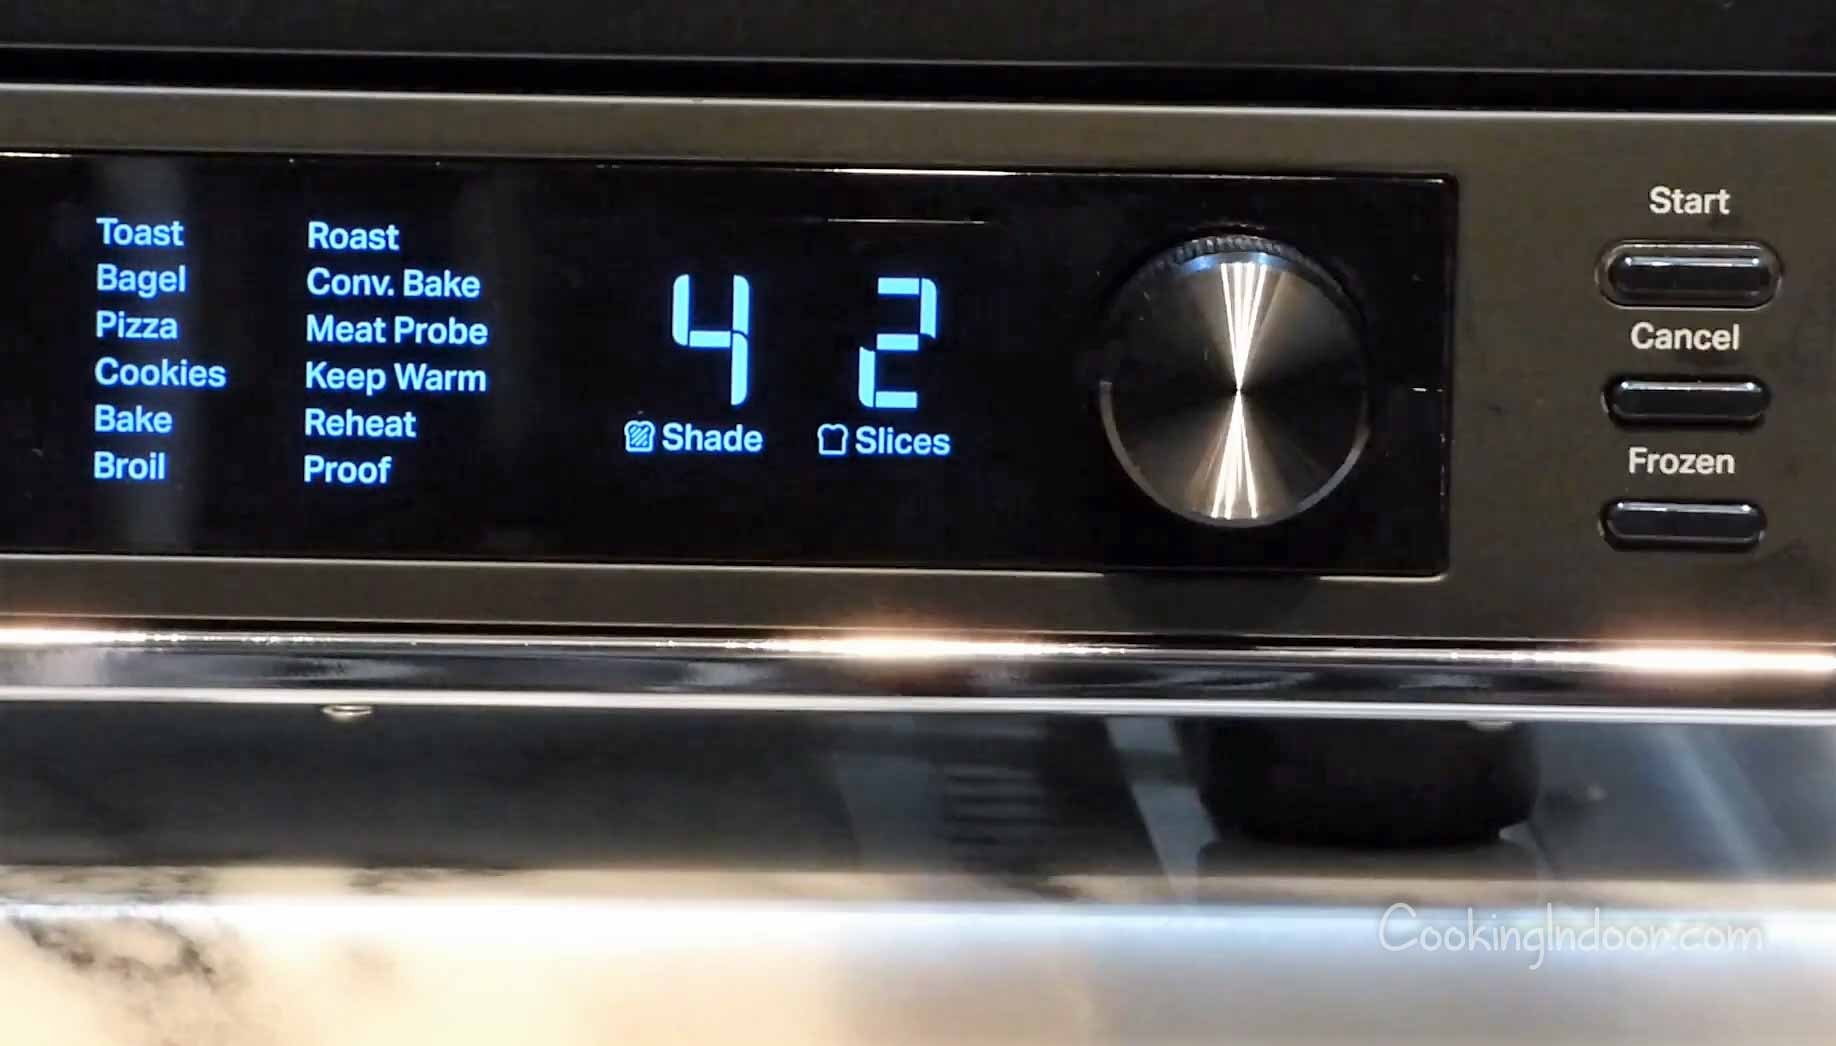 Best top toaster ovens